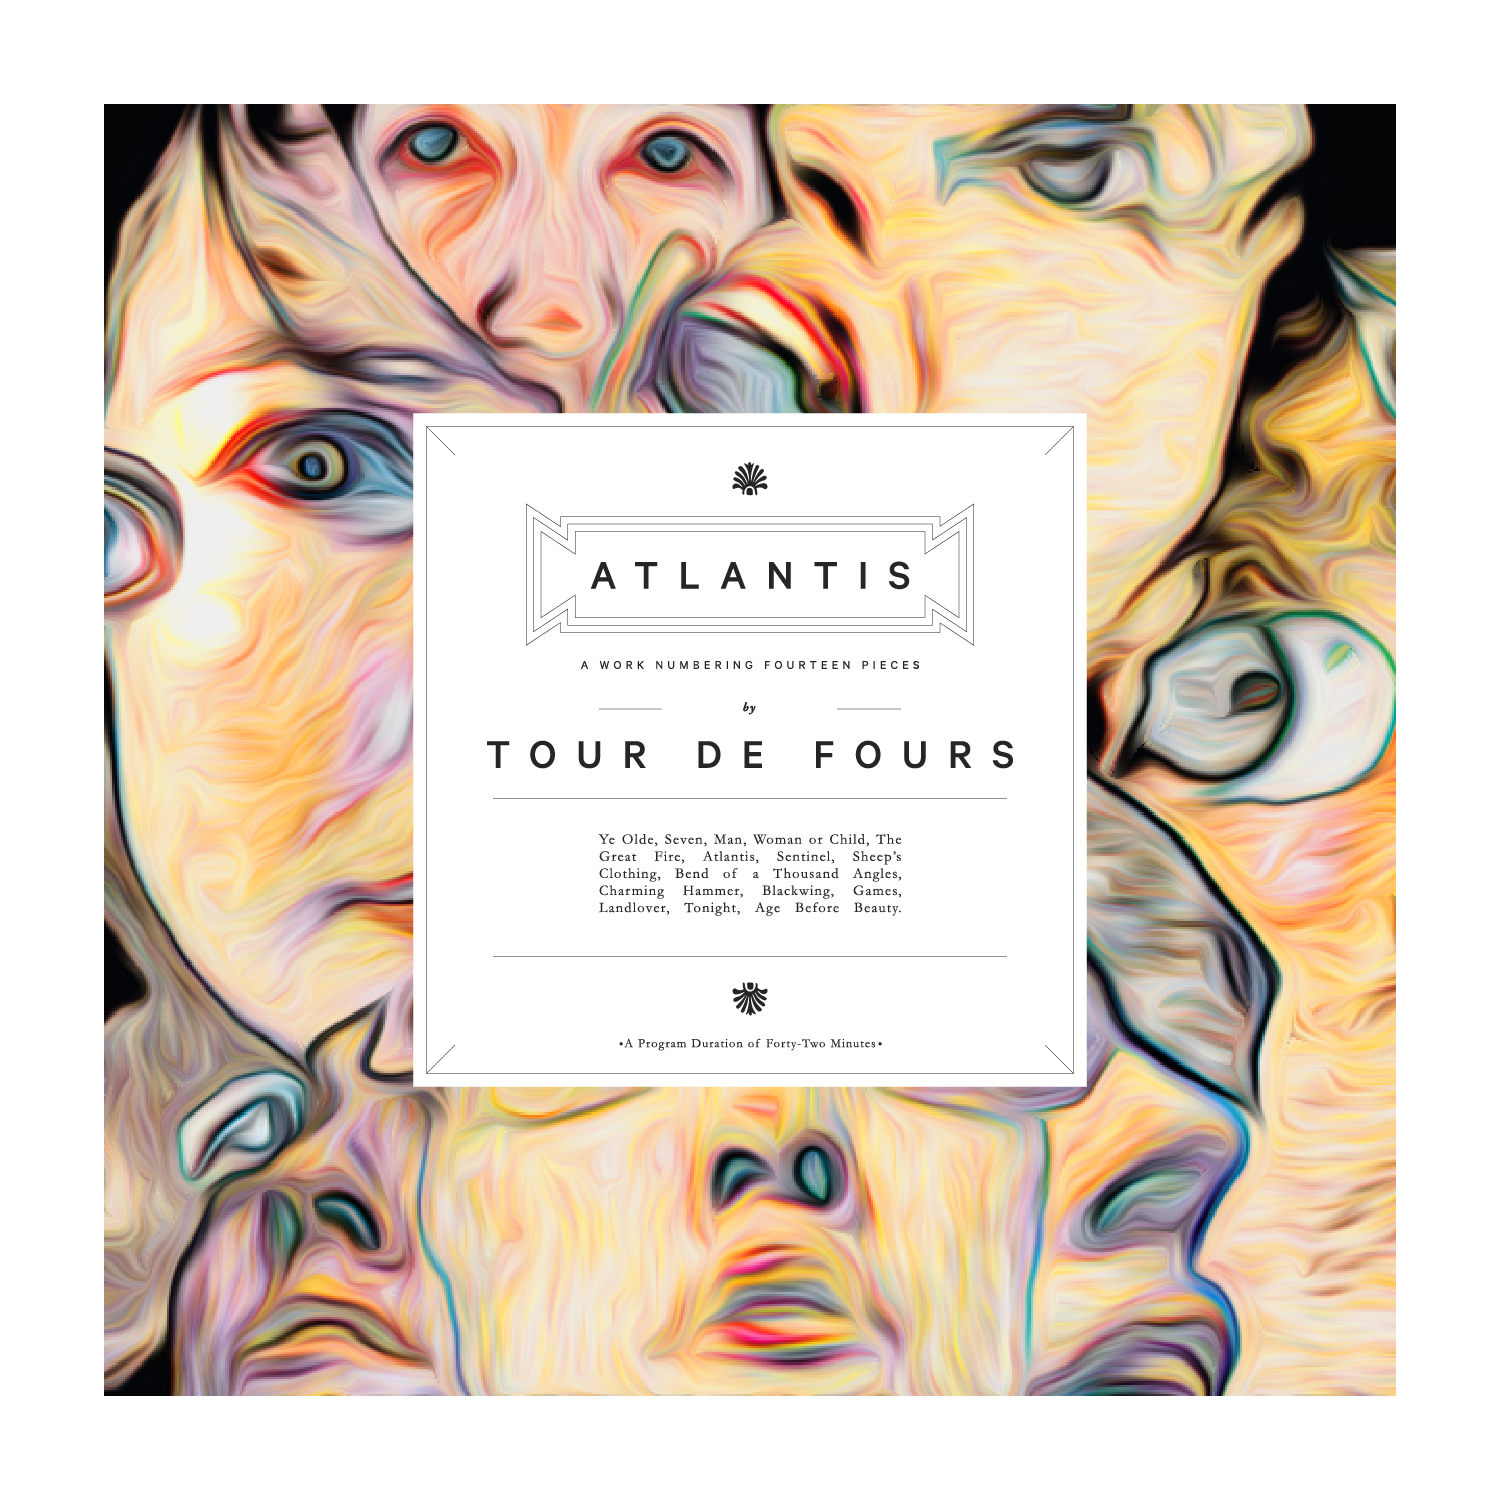 Tour-de-Fours-Chris-von-Szombathy-Atlantis-LP